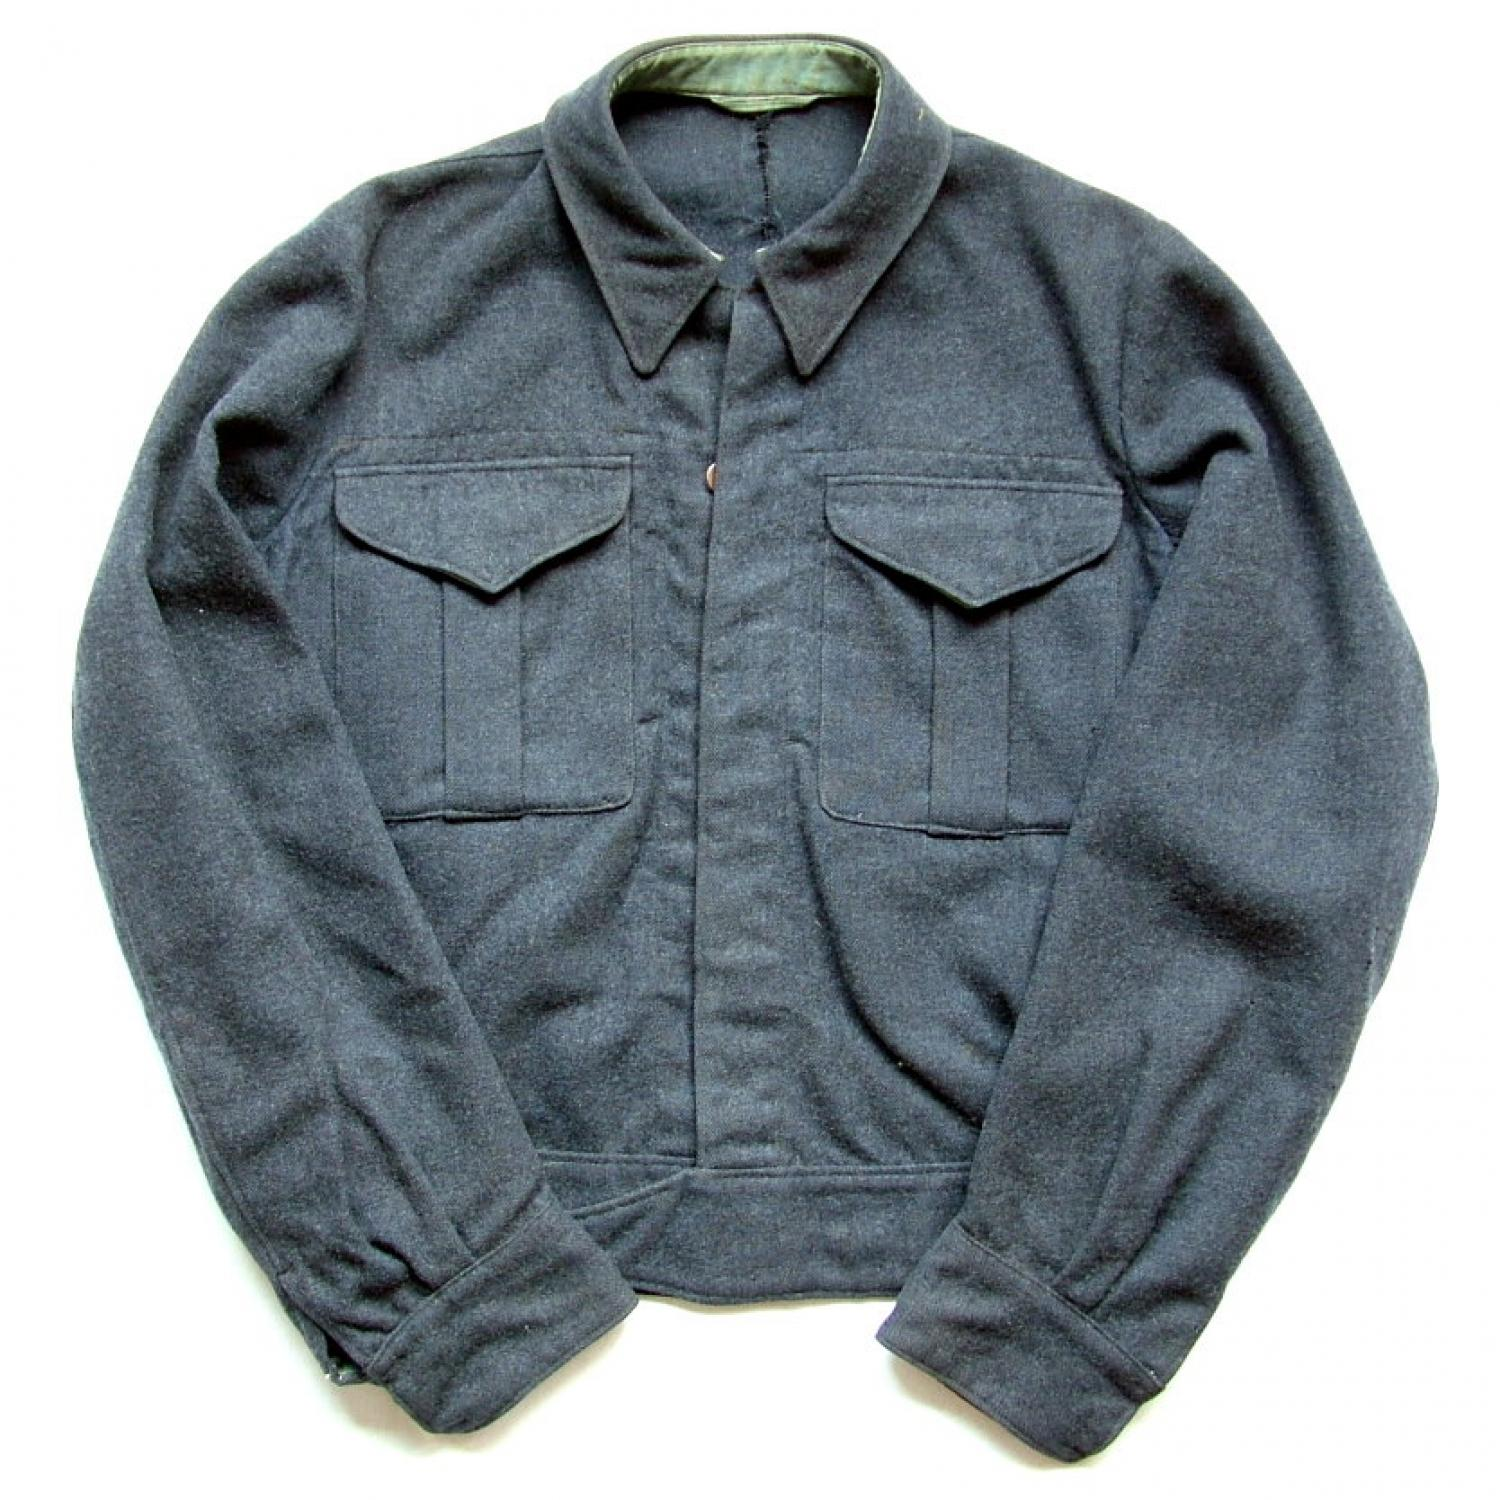 RCAF Suits Aircrew Blouse